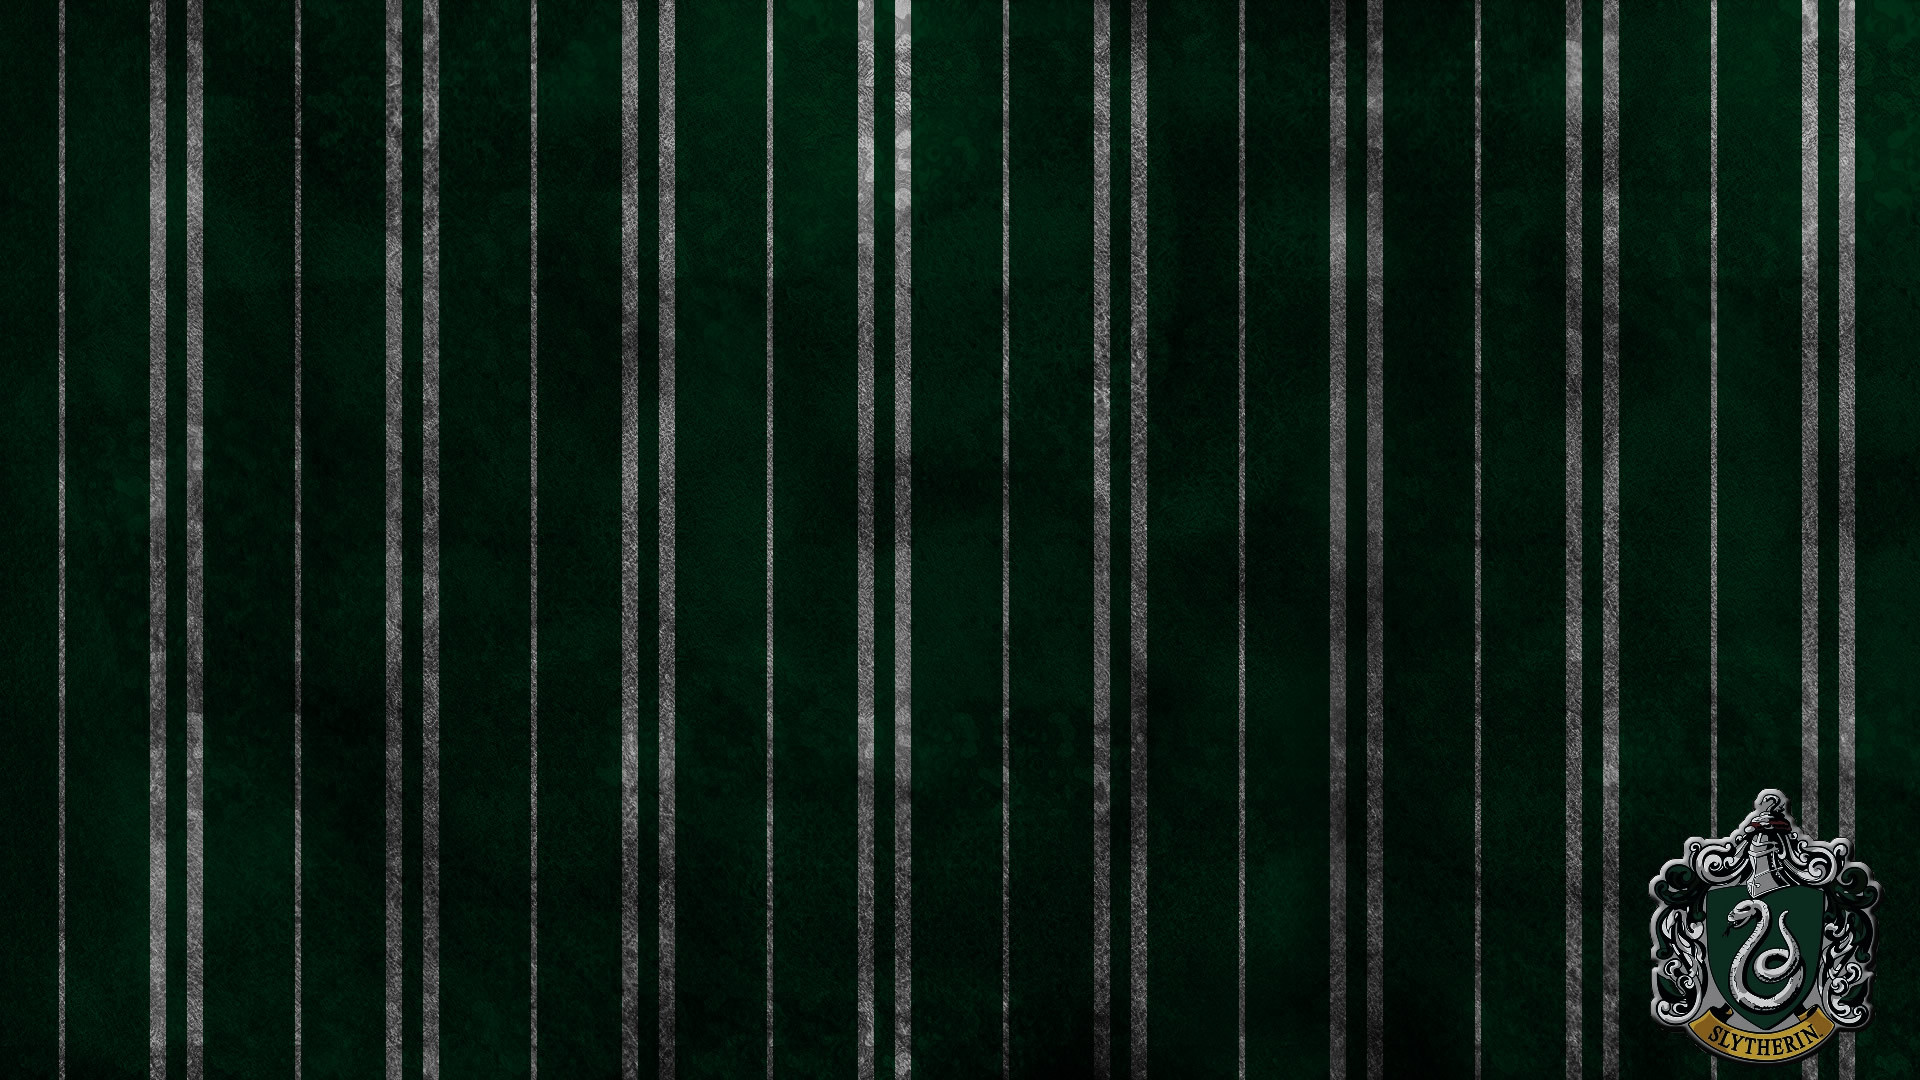 1920x1080 Slytherin Wallpapers Hd Stay